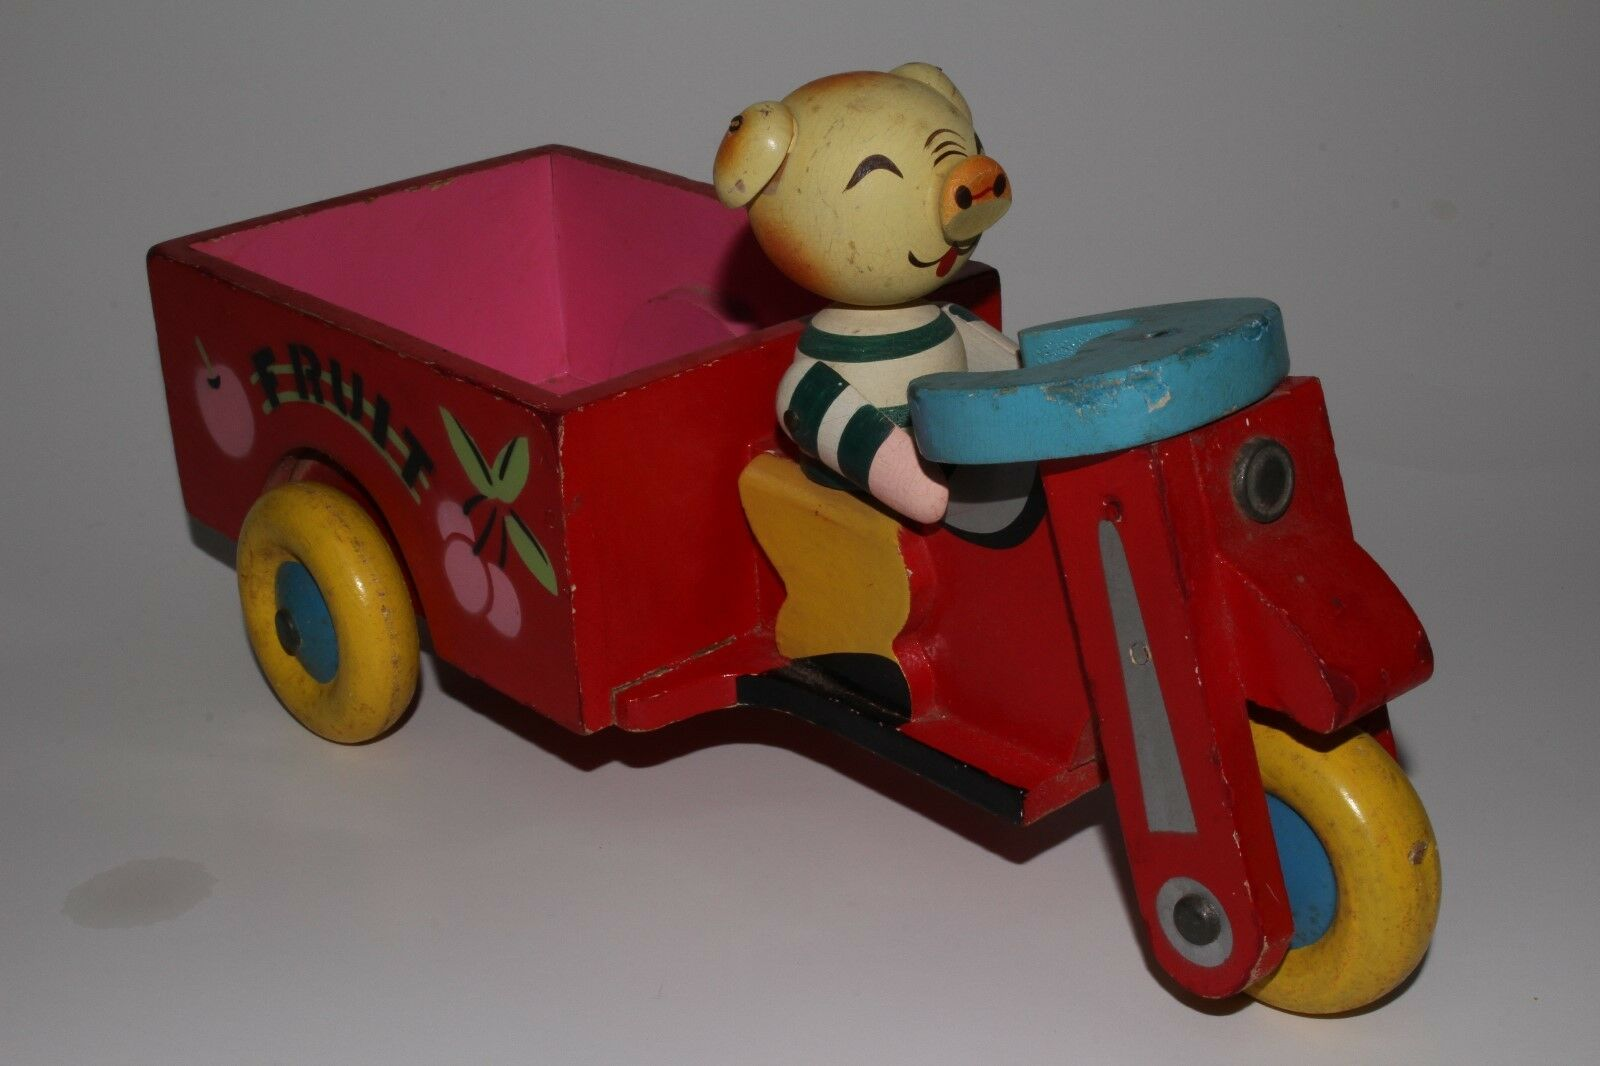 1950's Made in Japan Wooden Fruit Delivery Motorcycle Cart